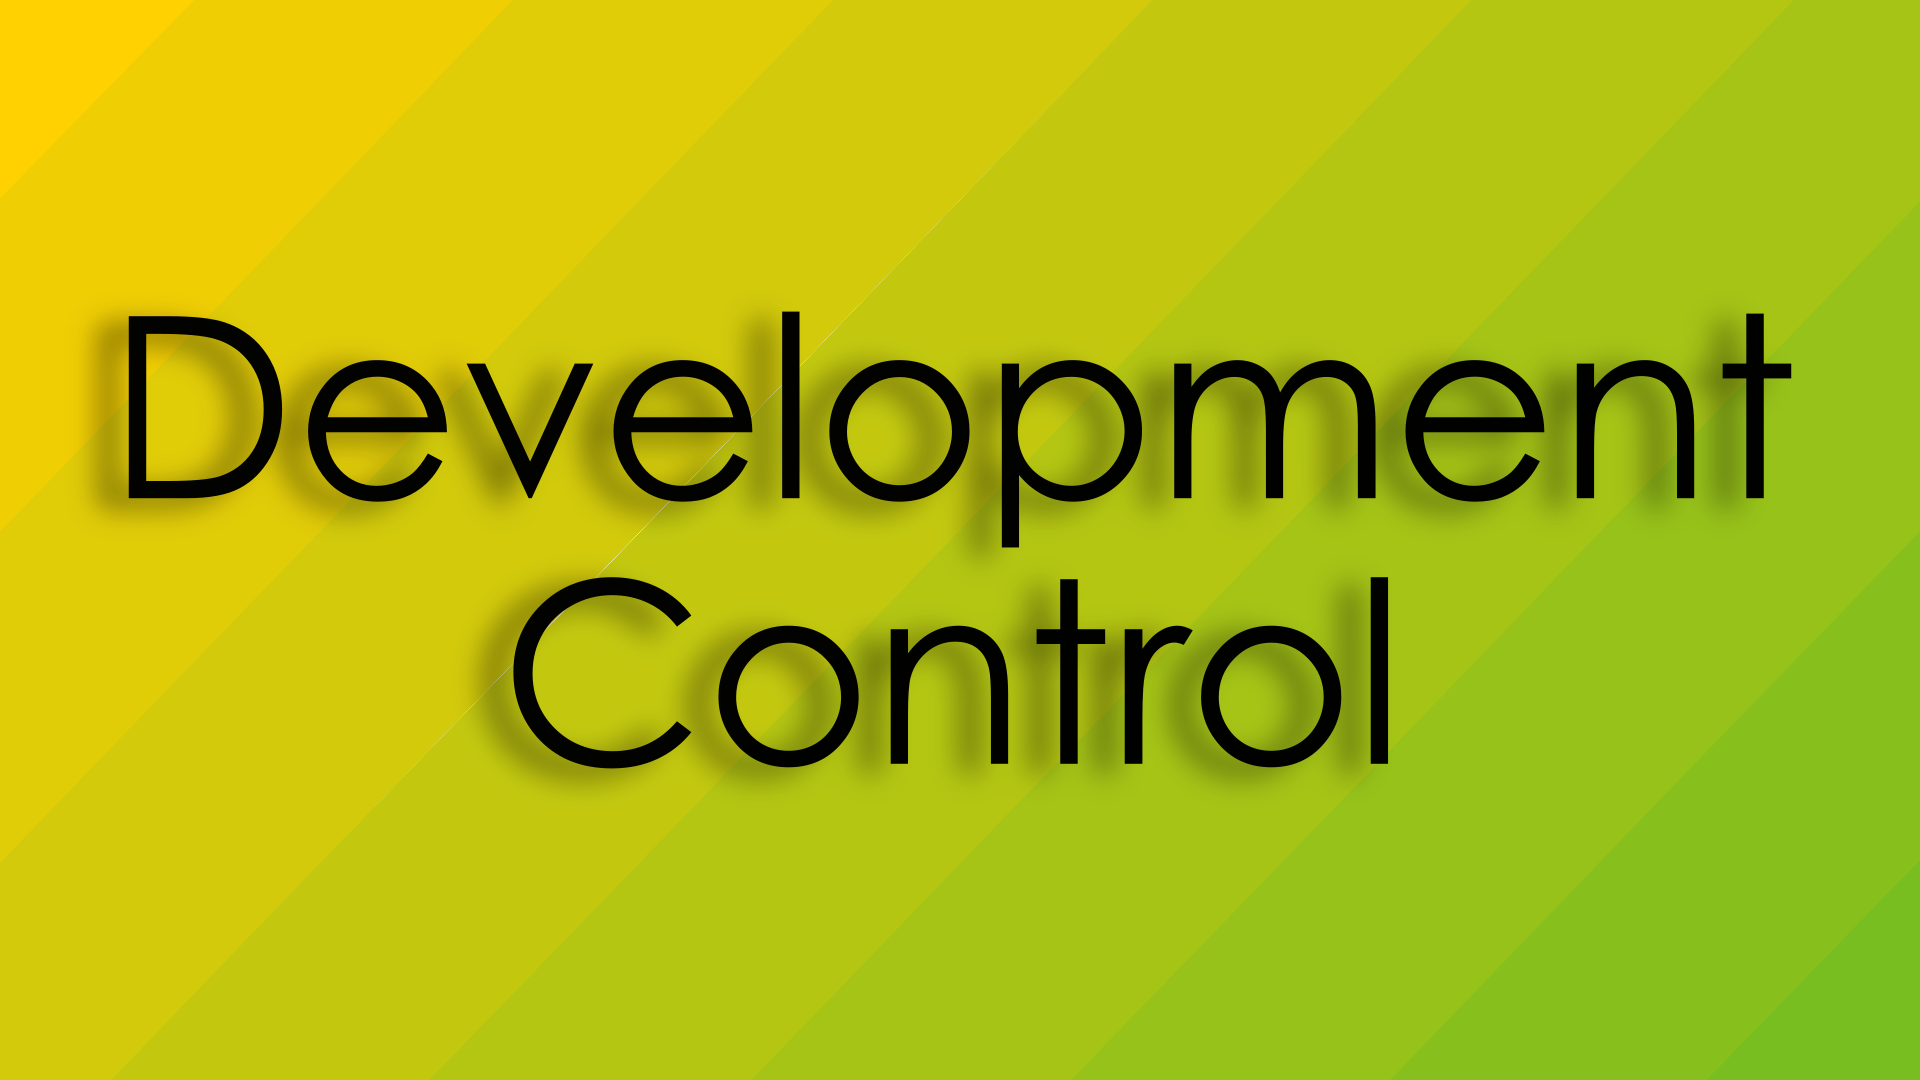 Text reads: Development Control